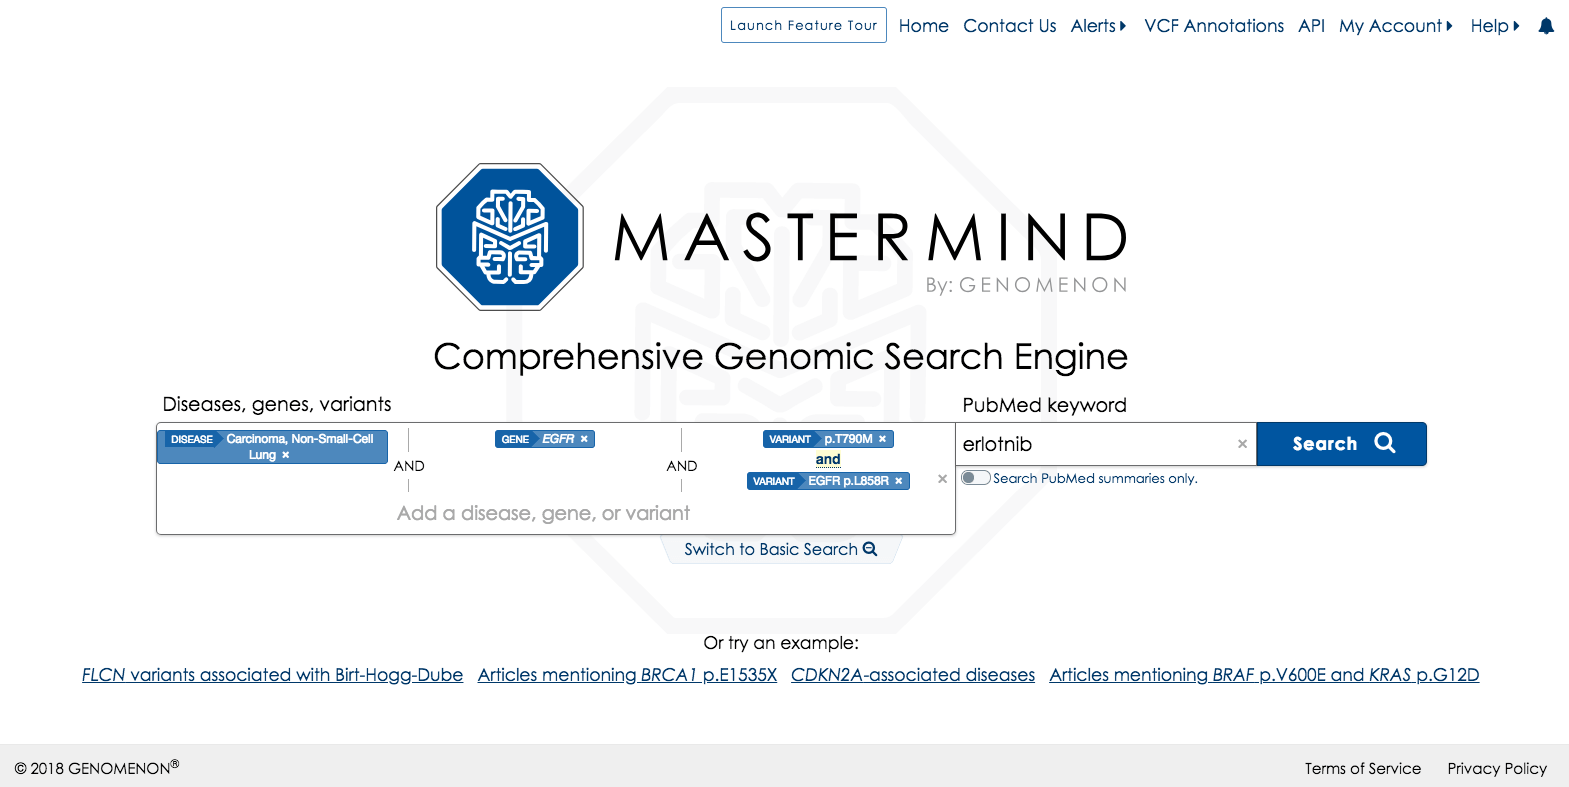 Mastermind Professional Edition